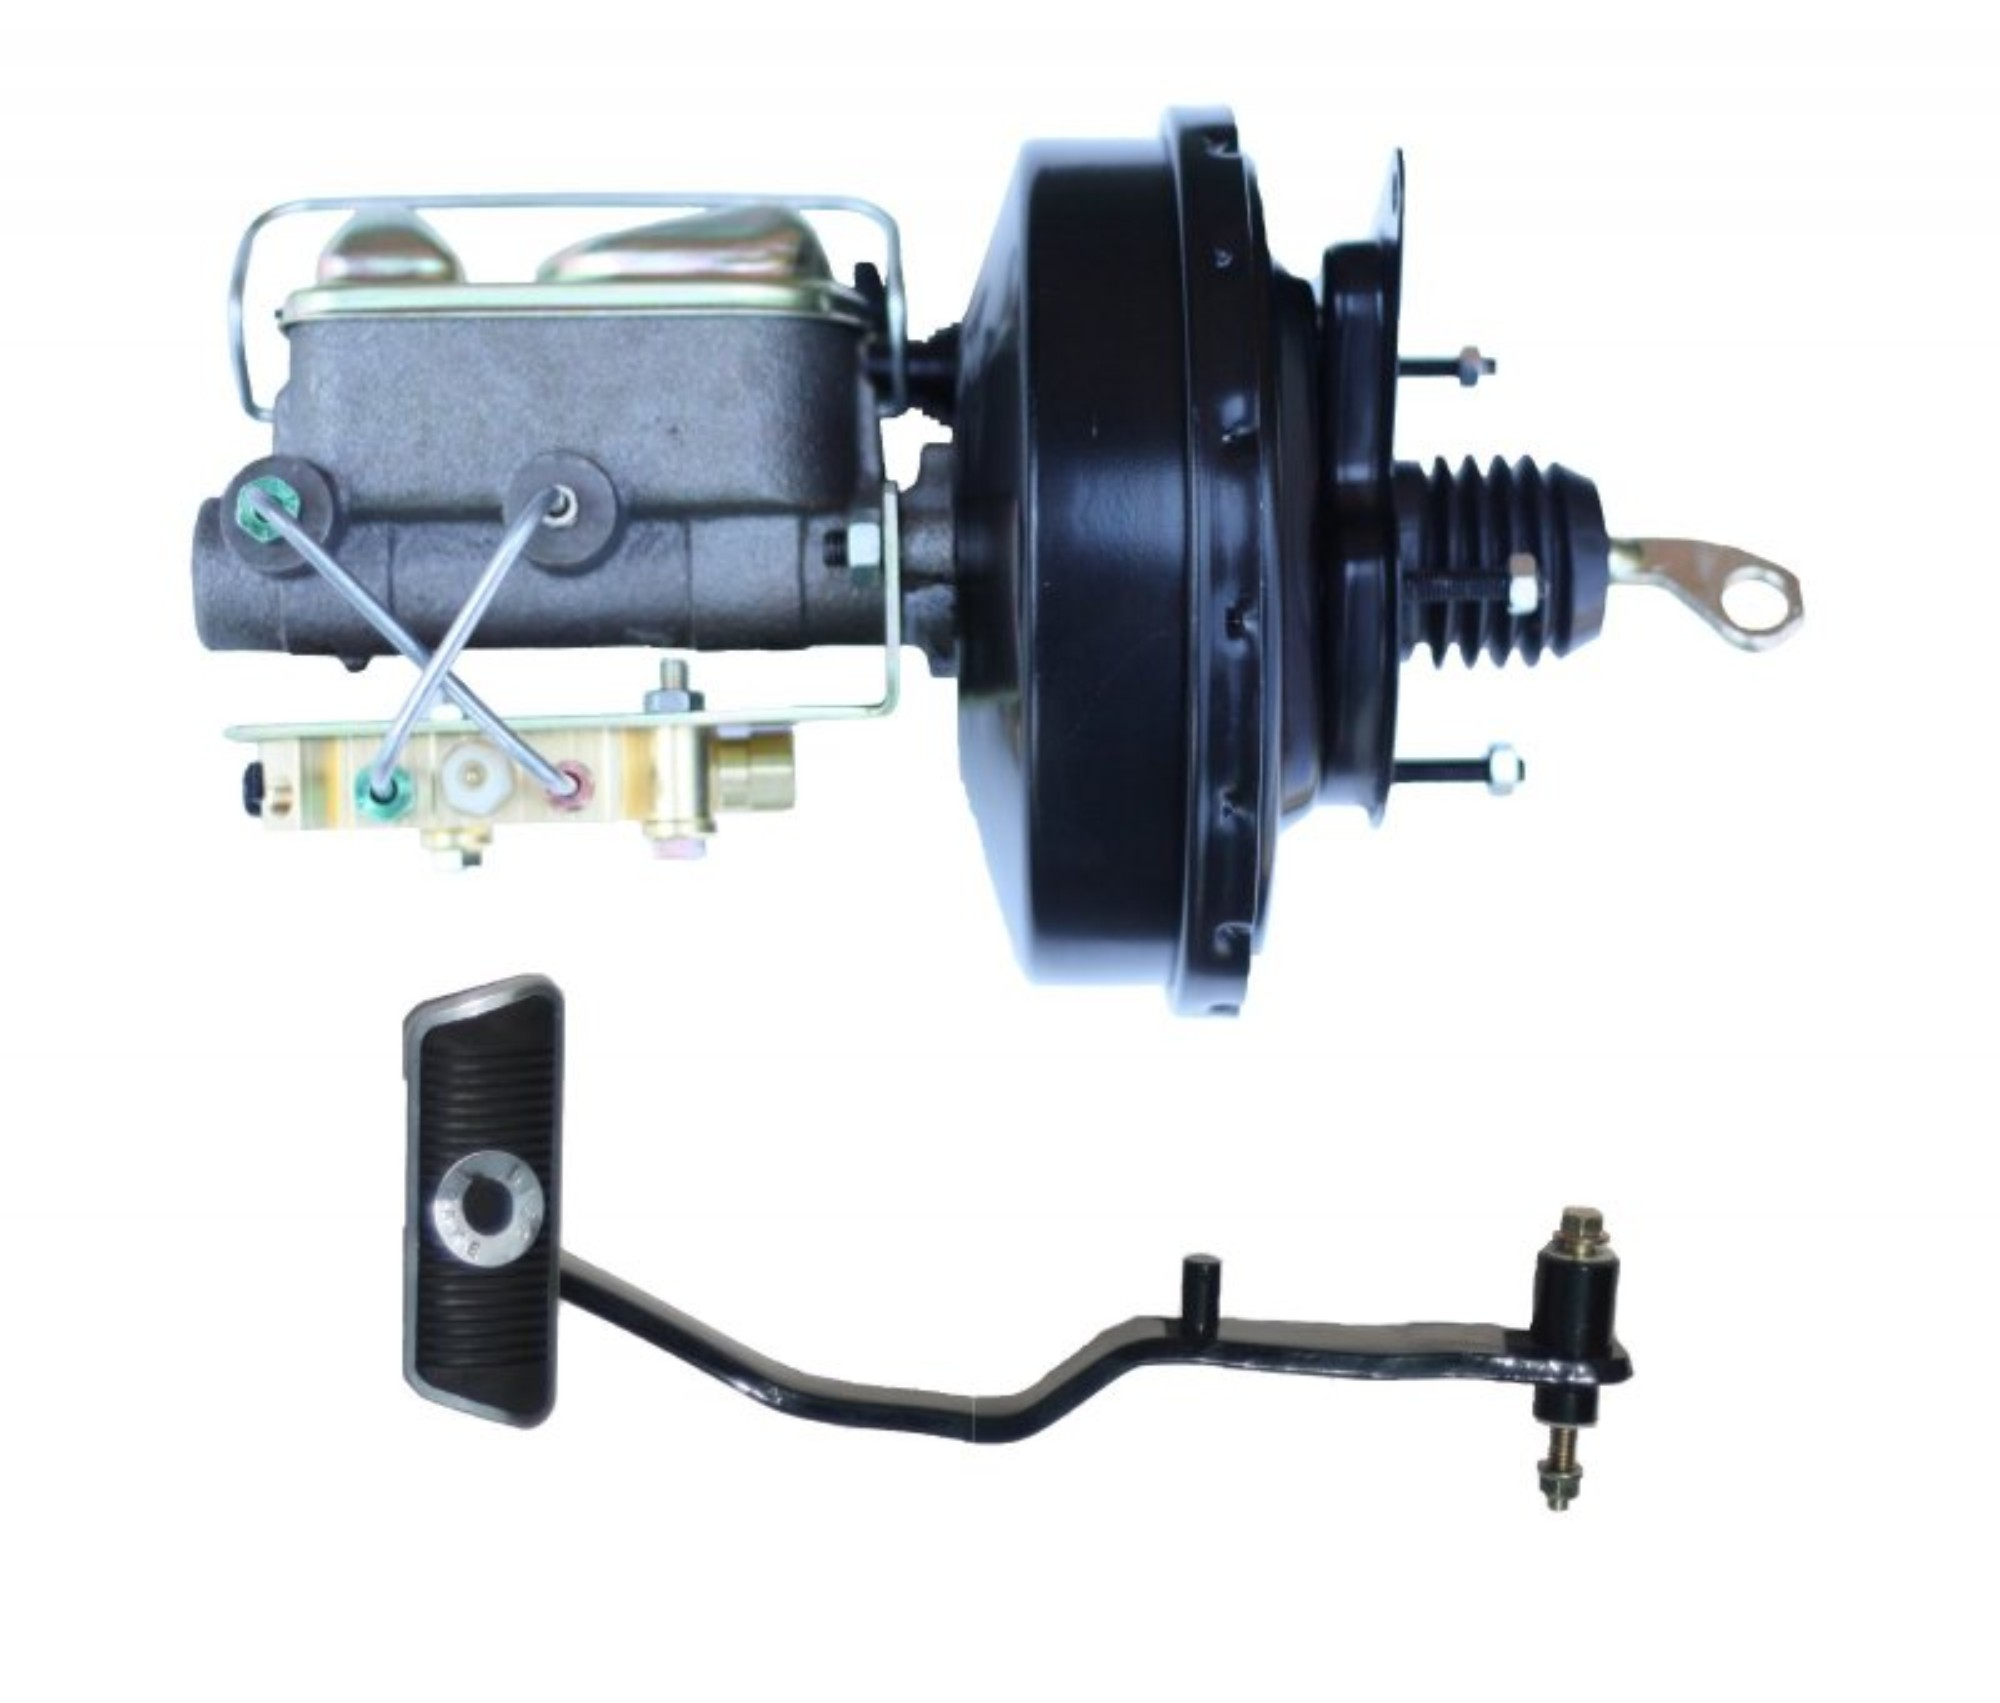 LEED Brakes 03473PA 9 in Power Brake Booster 1 in bore Master Cylinder disc/disc Auto